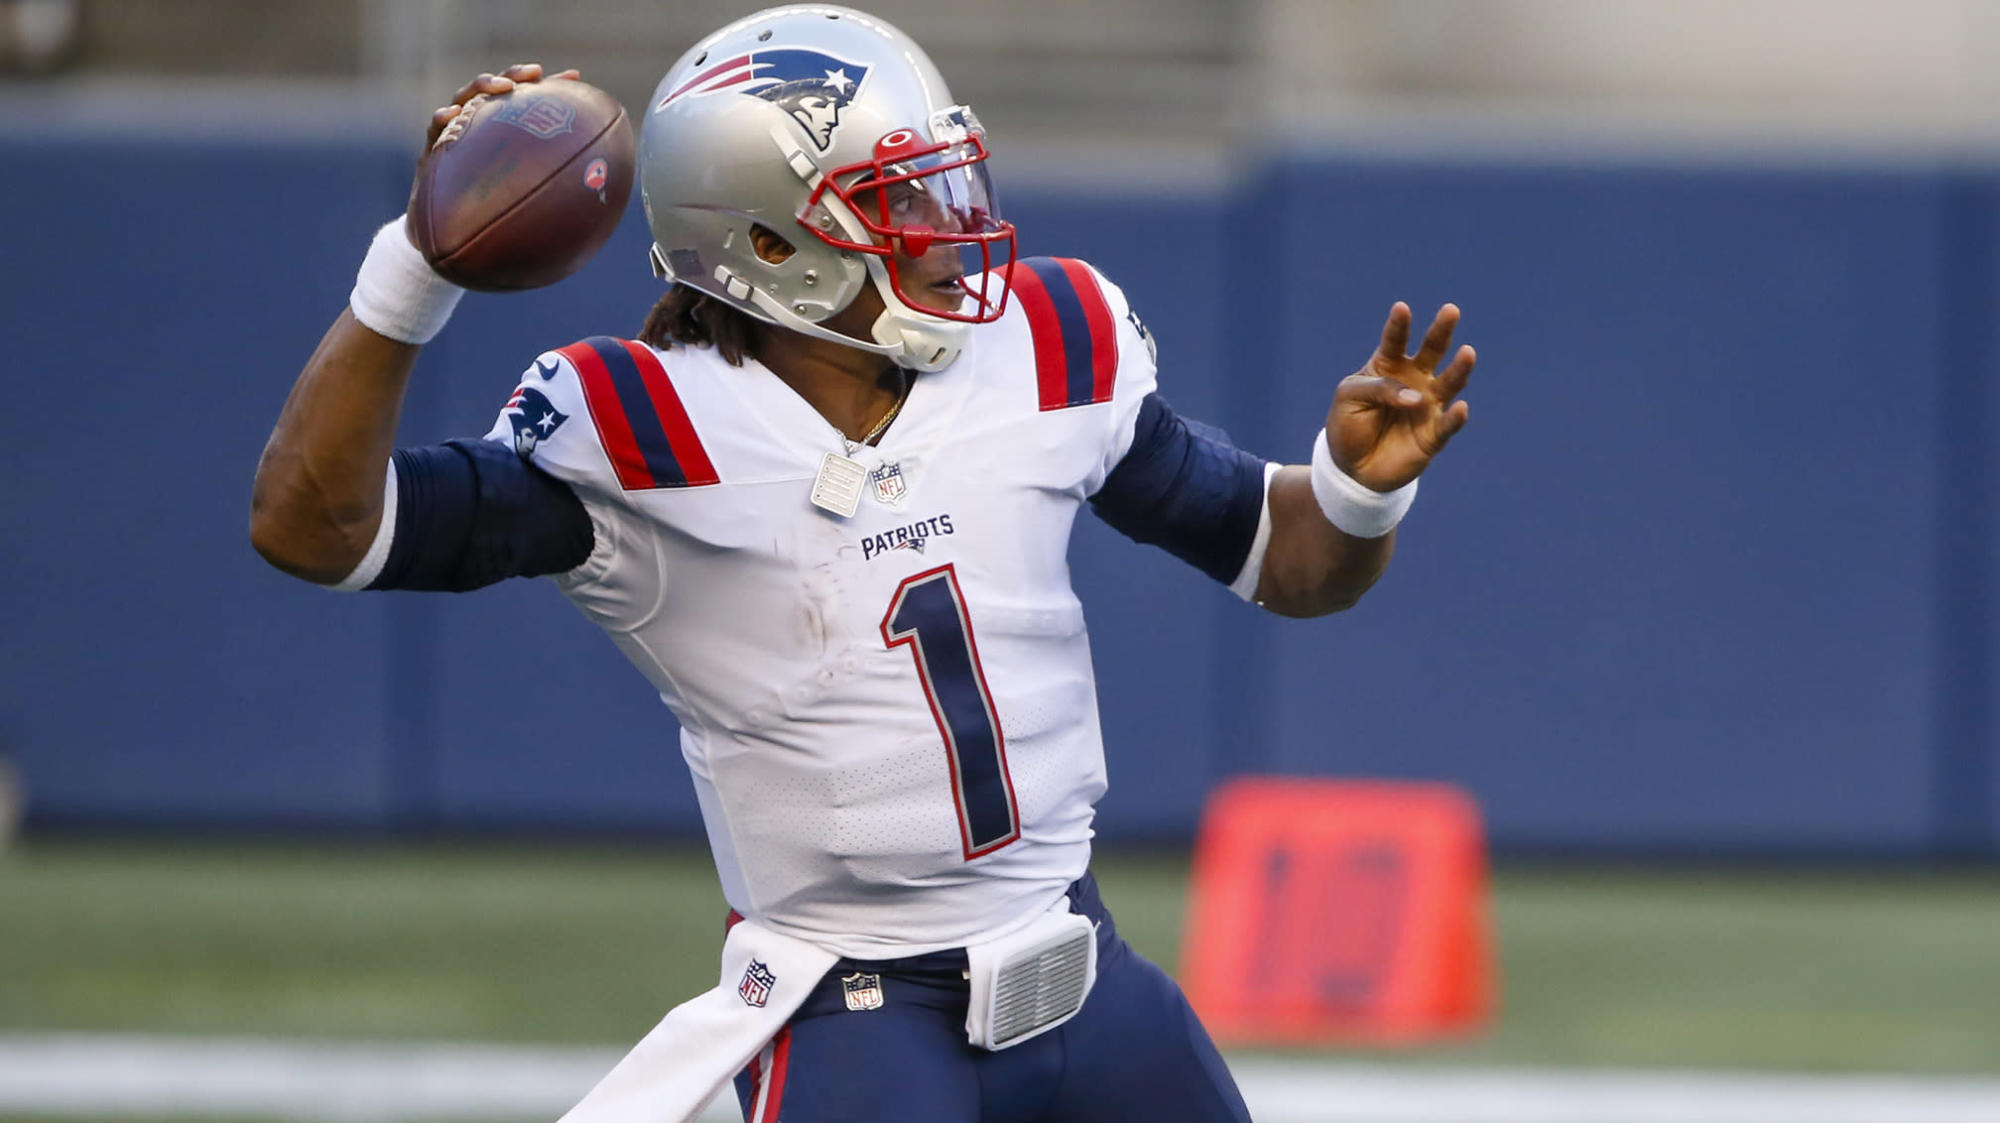 Week 11 Nfl Dfs Stacks Is it sate to visit paris this summer after osama bin laden pasted away ? boris chen. 2